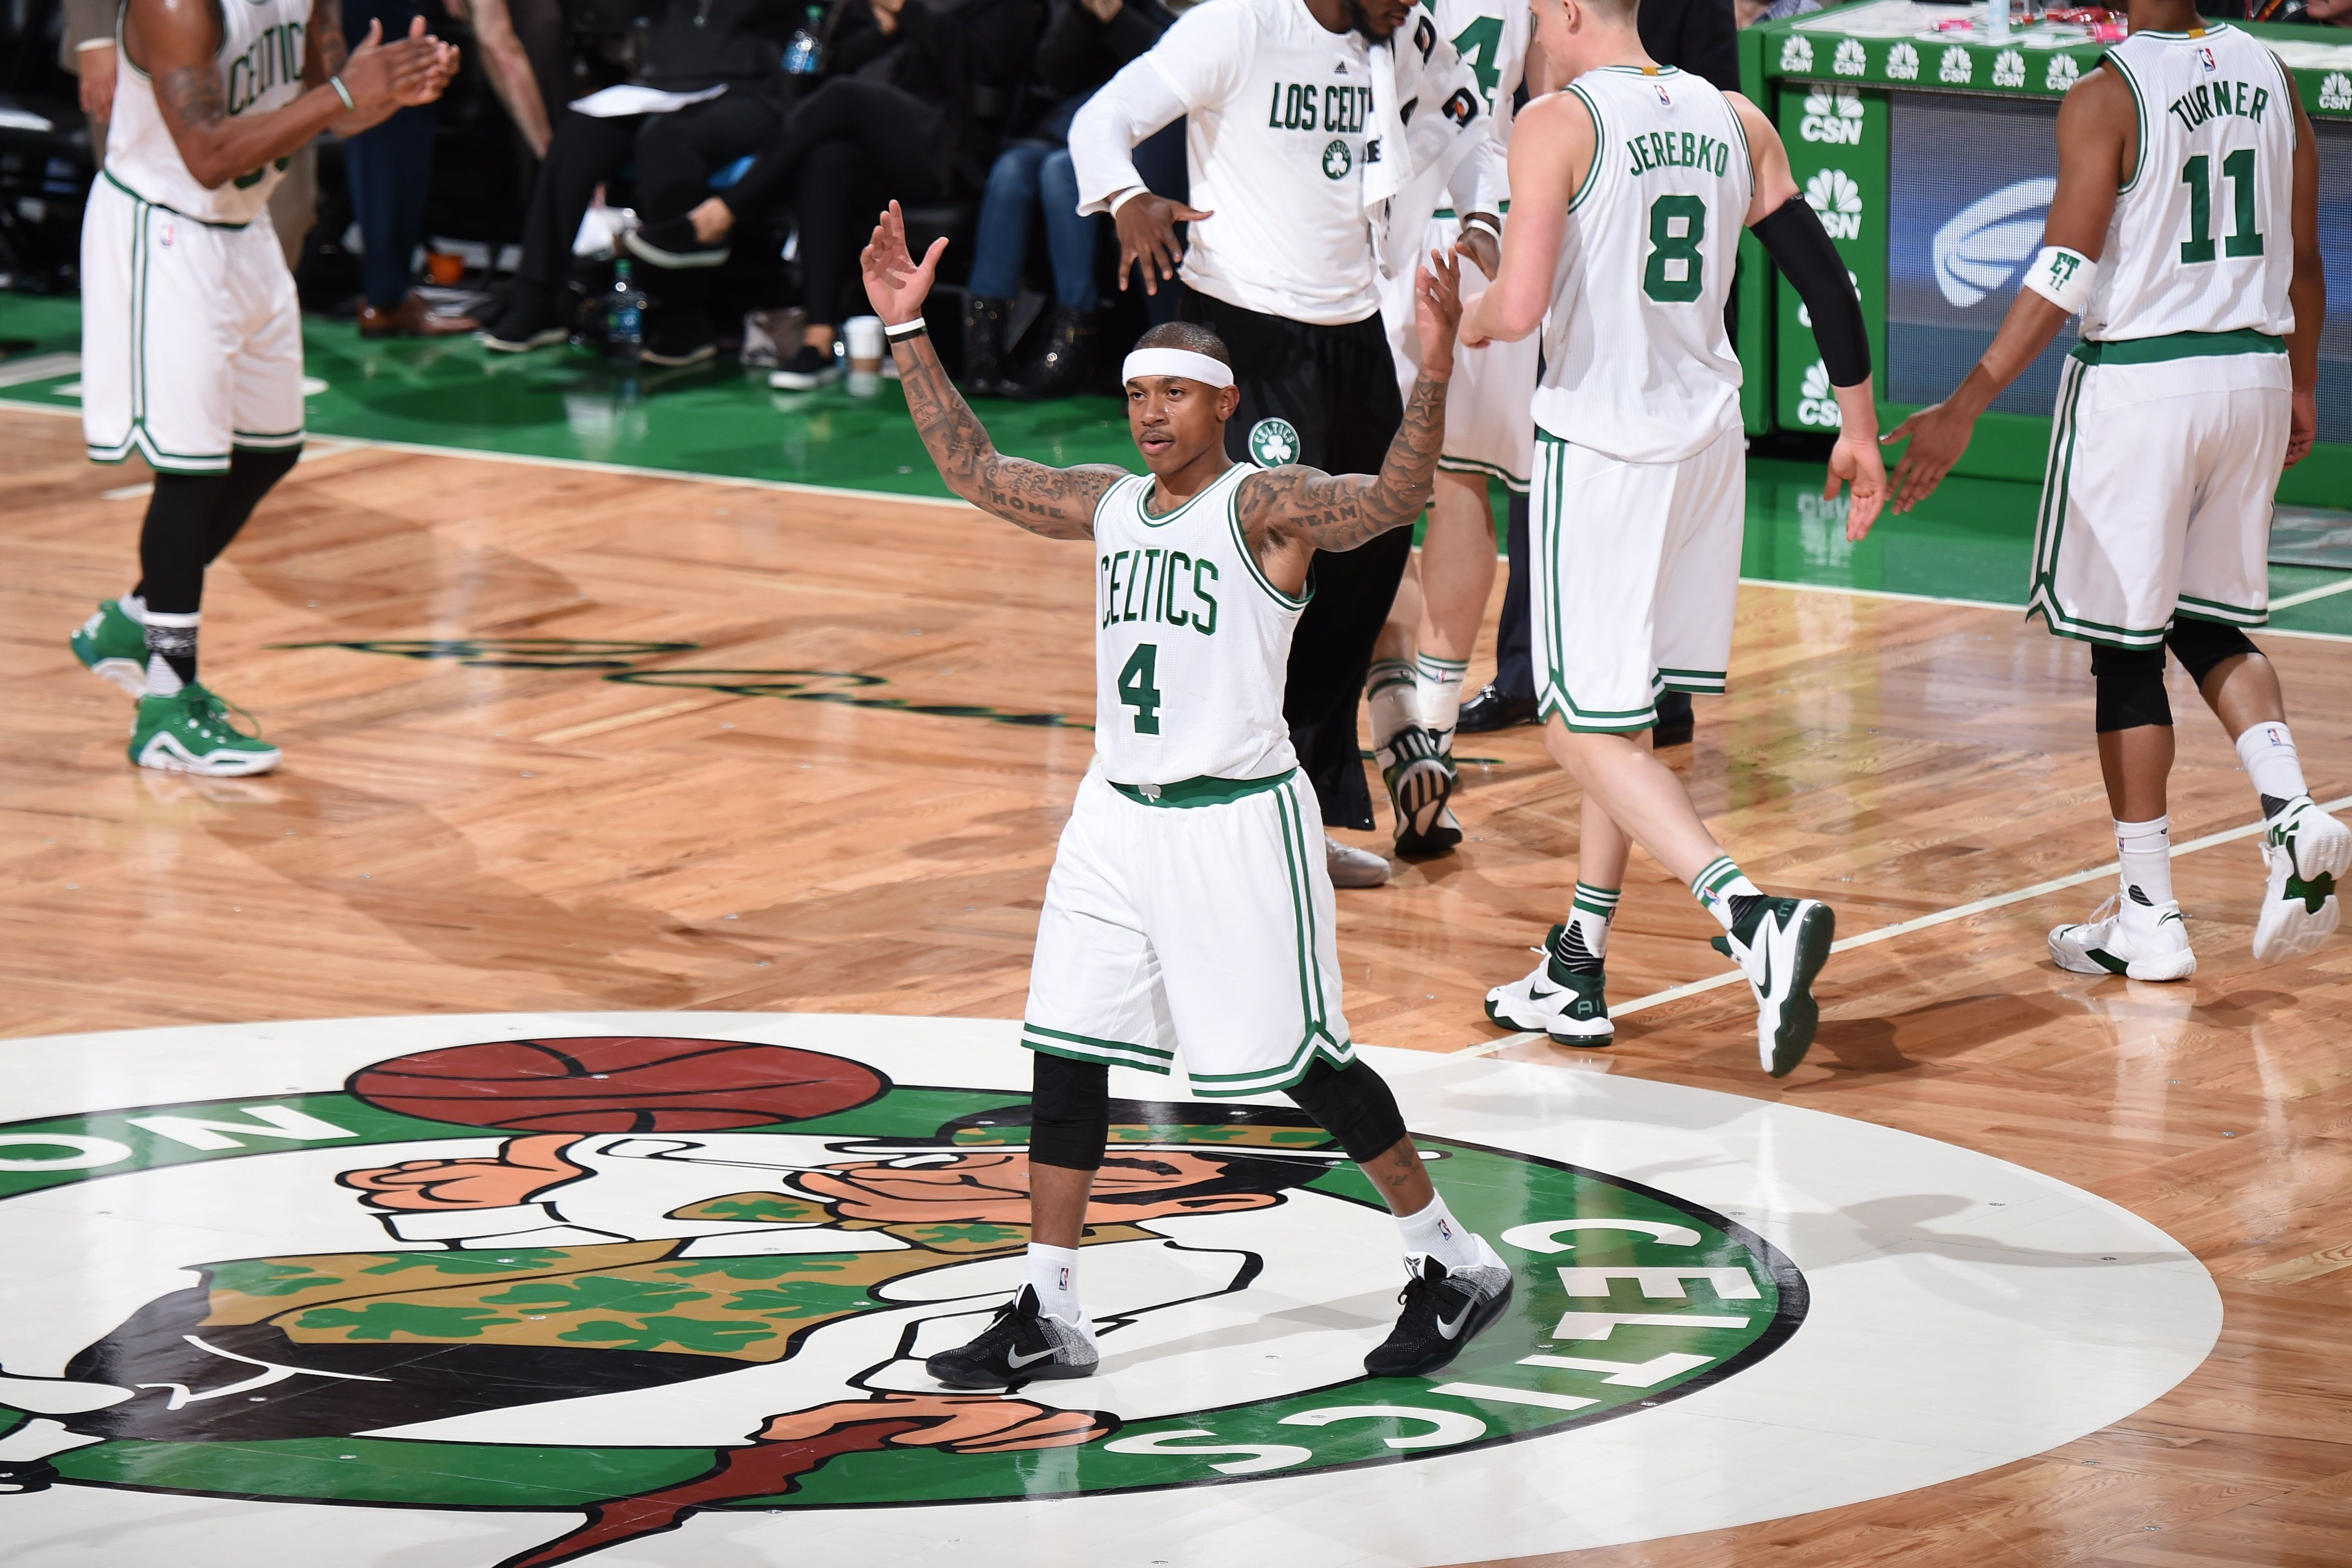 BOSTON, MA  - MARCH 2: Isaiah Thomas #4 of the Boston Celtics during the game against the Portland Trail Blazers on March 2, 2016 at TD Garden in Boston, Massachusetts. NOTE TO USER: User expressly acknowledges and agrees that, by downloading and or using this Photograph, user is consenting to the terms and conditions of the Getty Images License Agreement. Mandatory Copyright Notice: Copyright 2016 NBAE (Photo by Brian Babineau/NBAE via Getty Images)